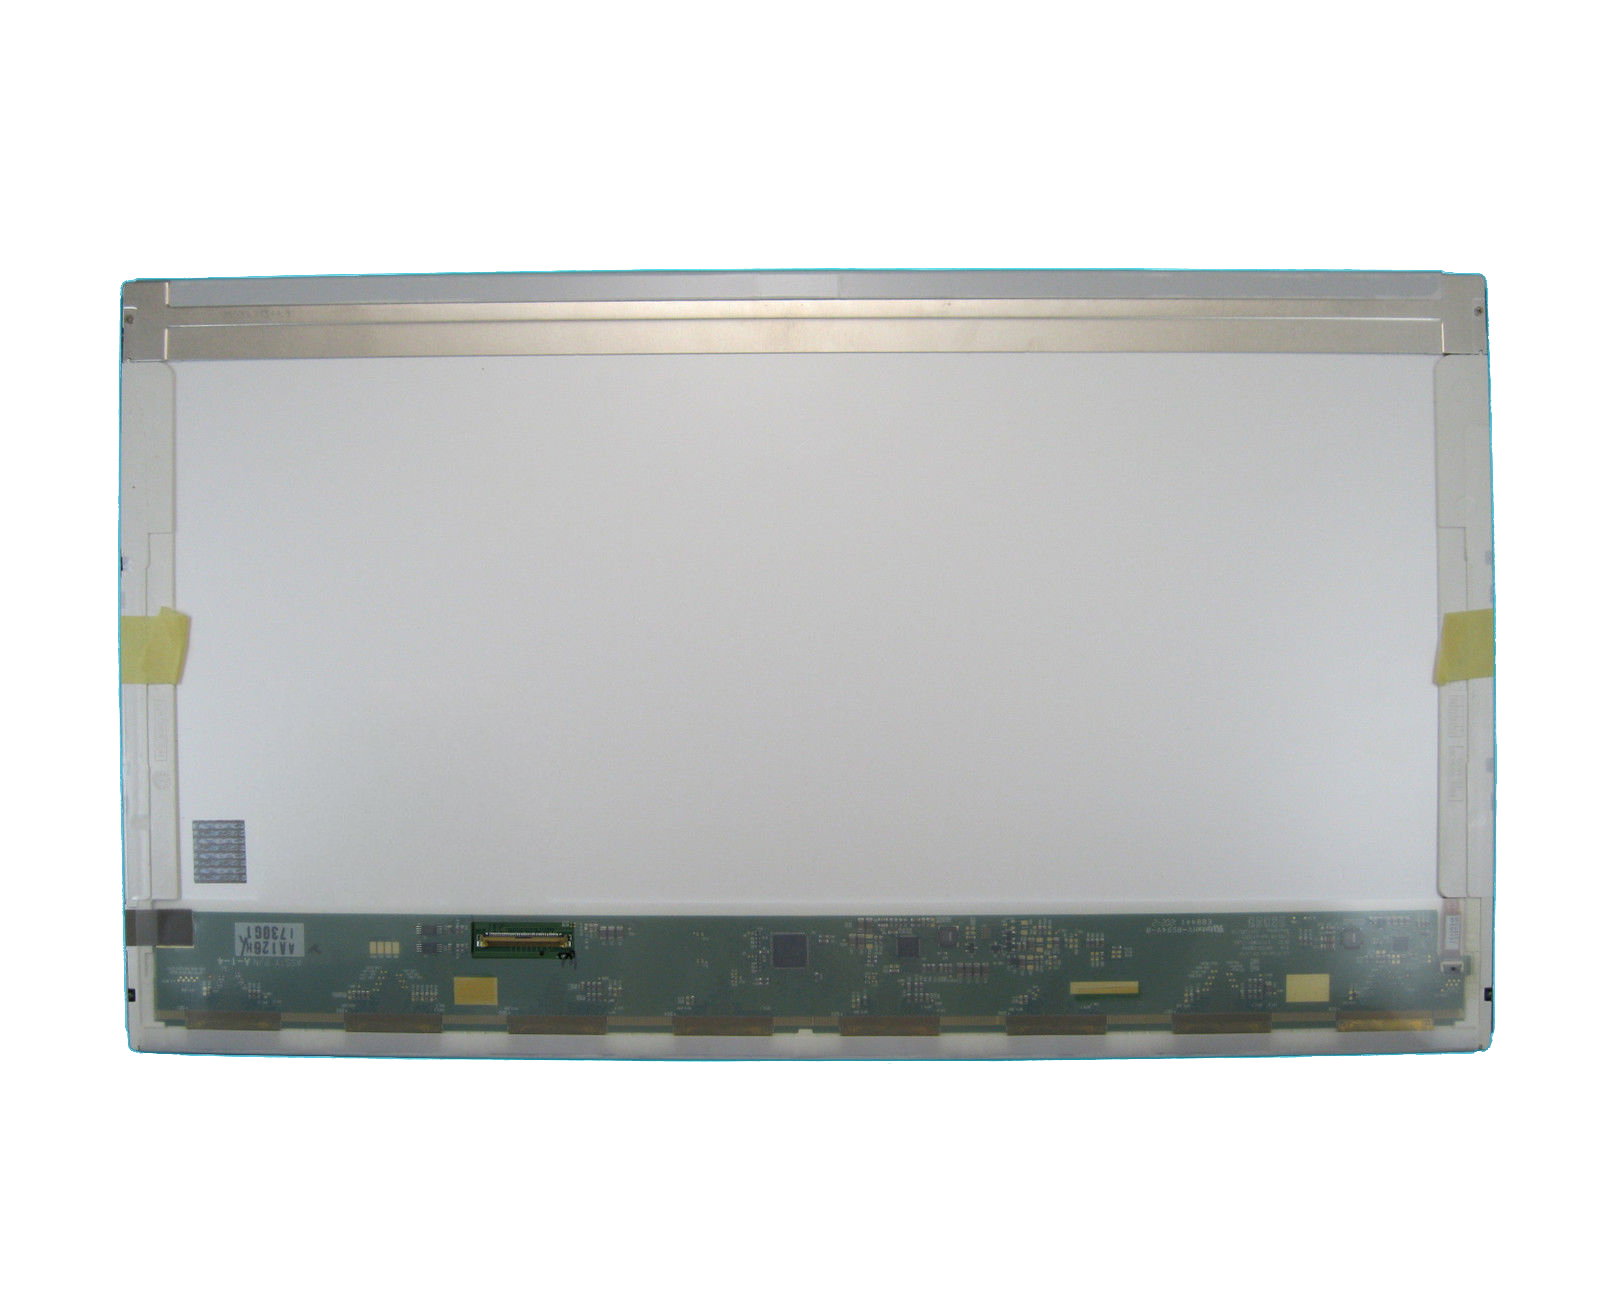 QuYing Laptop LCD Screen for ACER ASPIRE E1-771 E1-771G E1-731 V3-771 V3-771G V3-731 V3-731G P7YE5 SERIES (17.3 1600x900 40pin) quying laptop lcd screen for acer aspire 7745z 7741 7741g 7741zg 7741z series 17 3 inch 1600x900 40pin